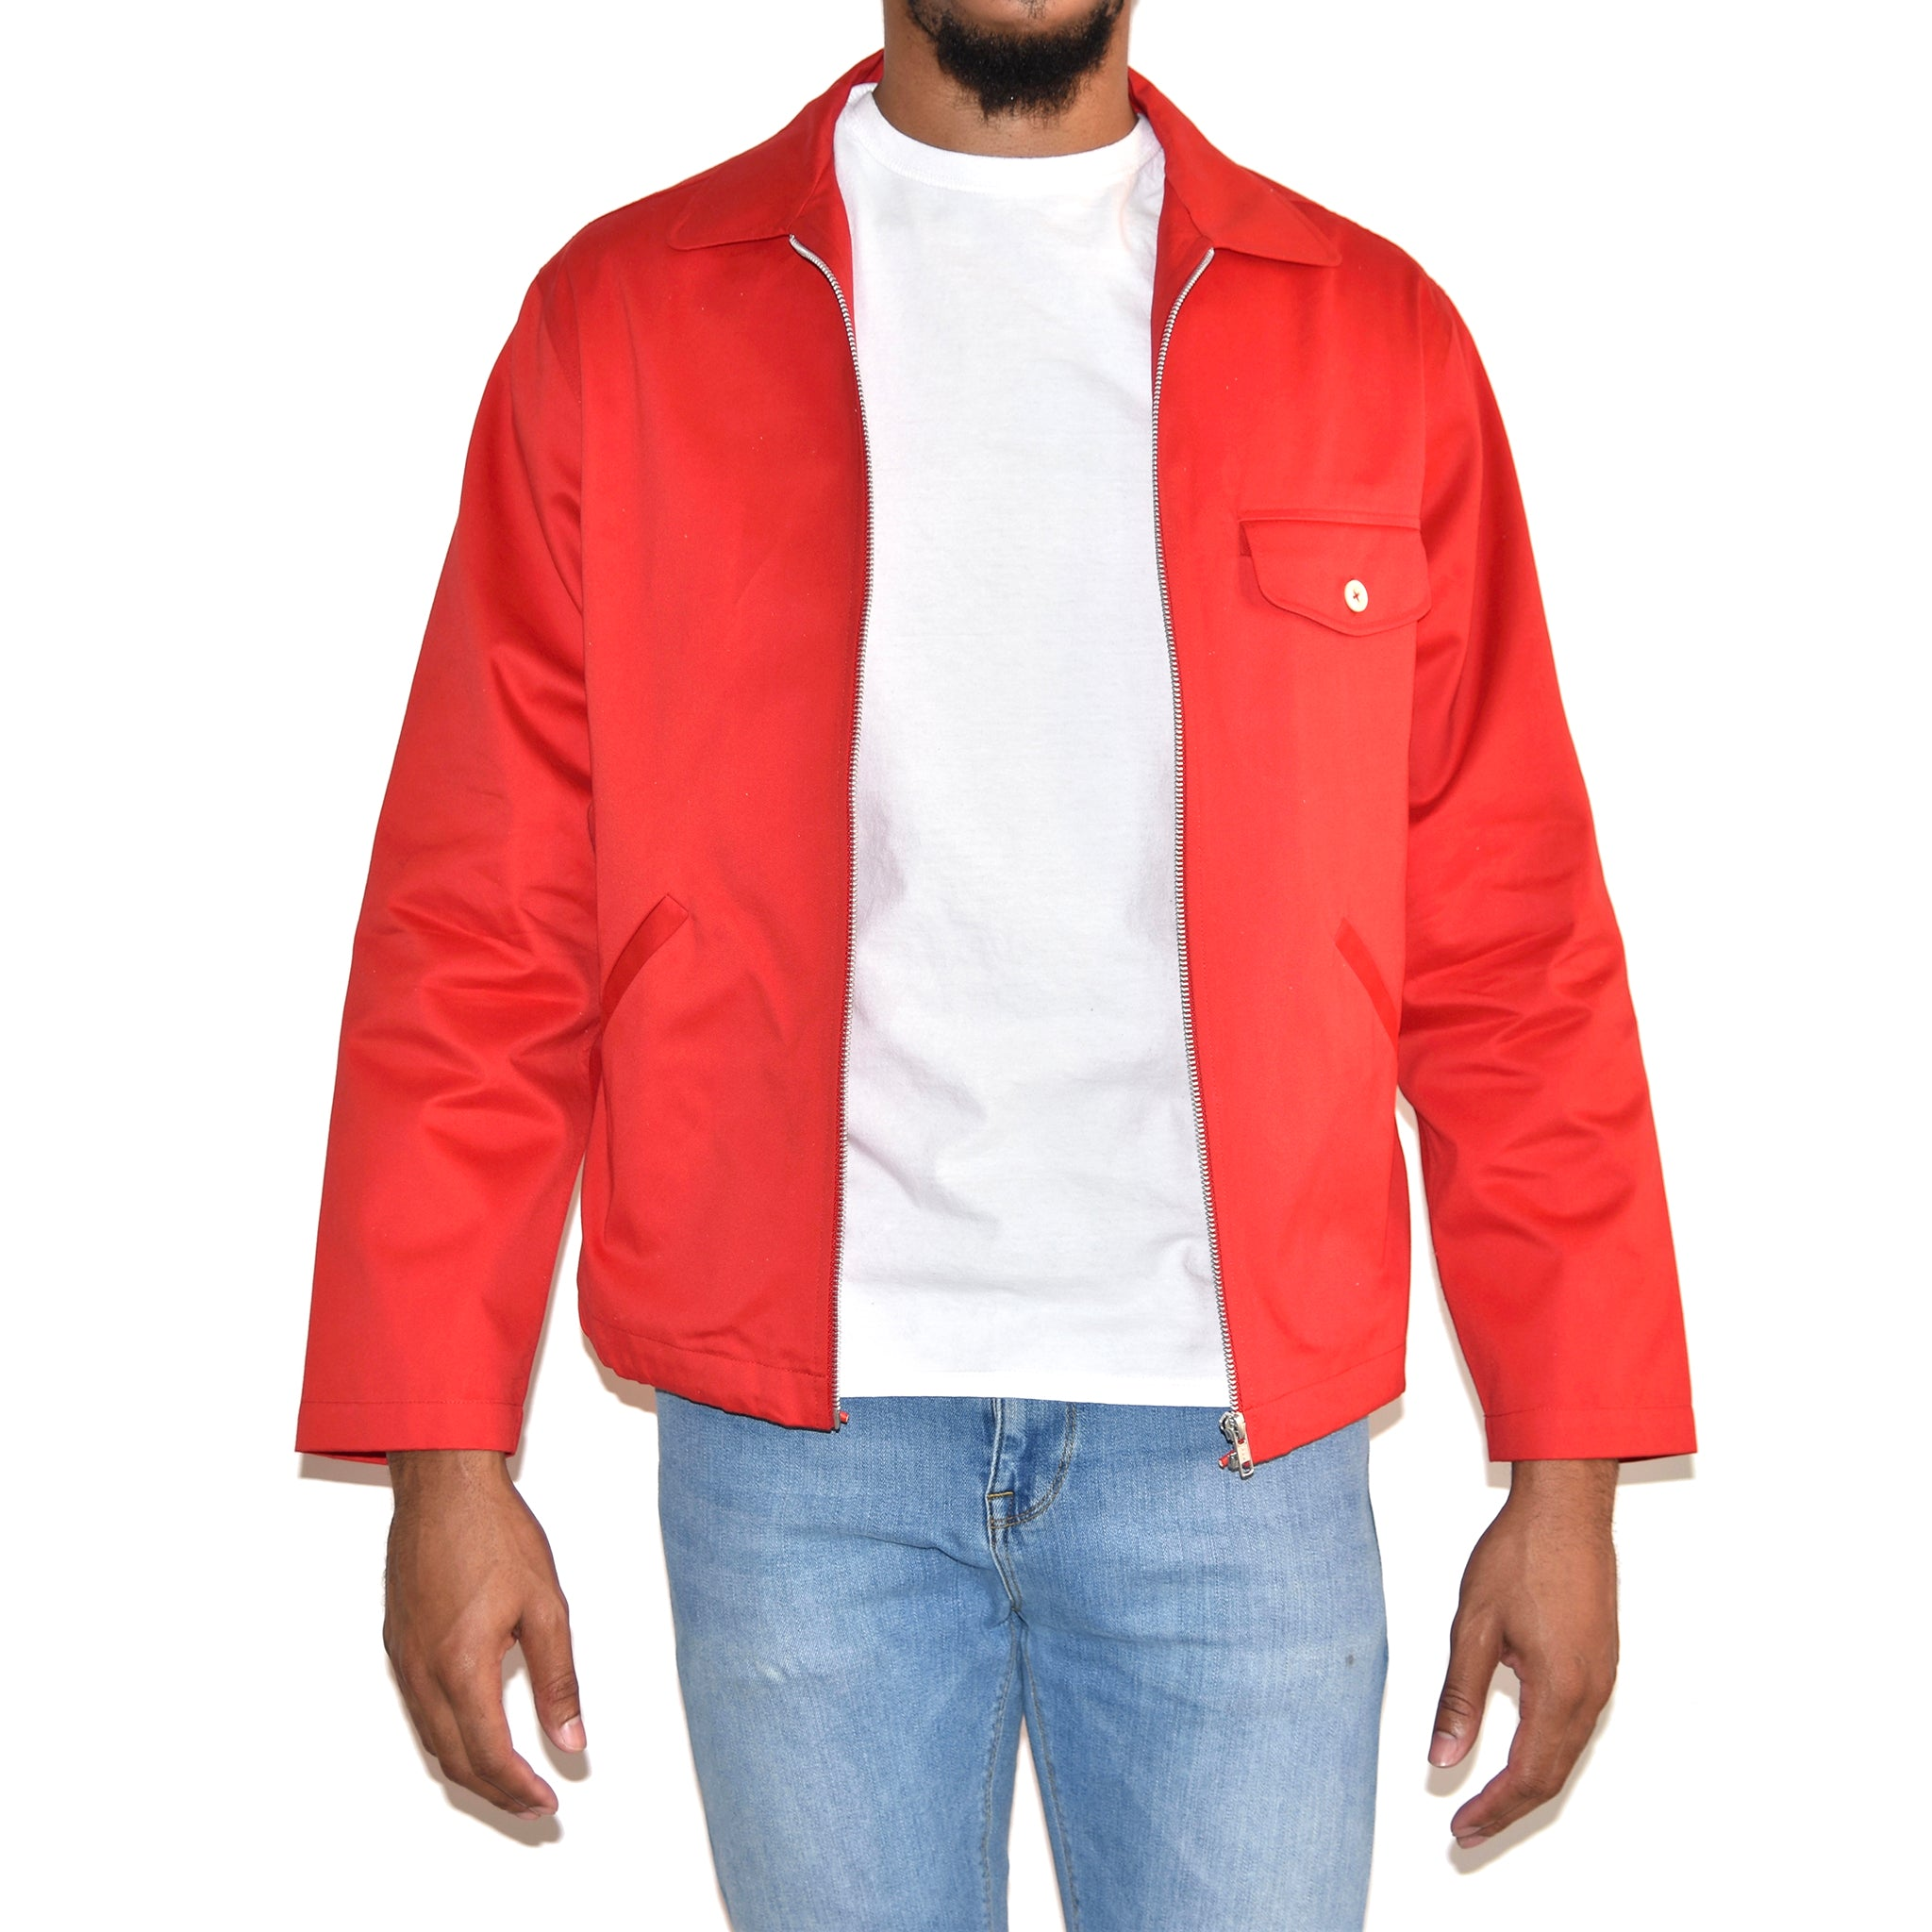 Personal Effects Men's Red Float Jacket on Well(un)known Available at Wellunknown.com